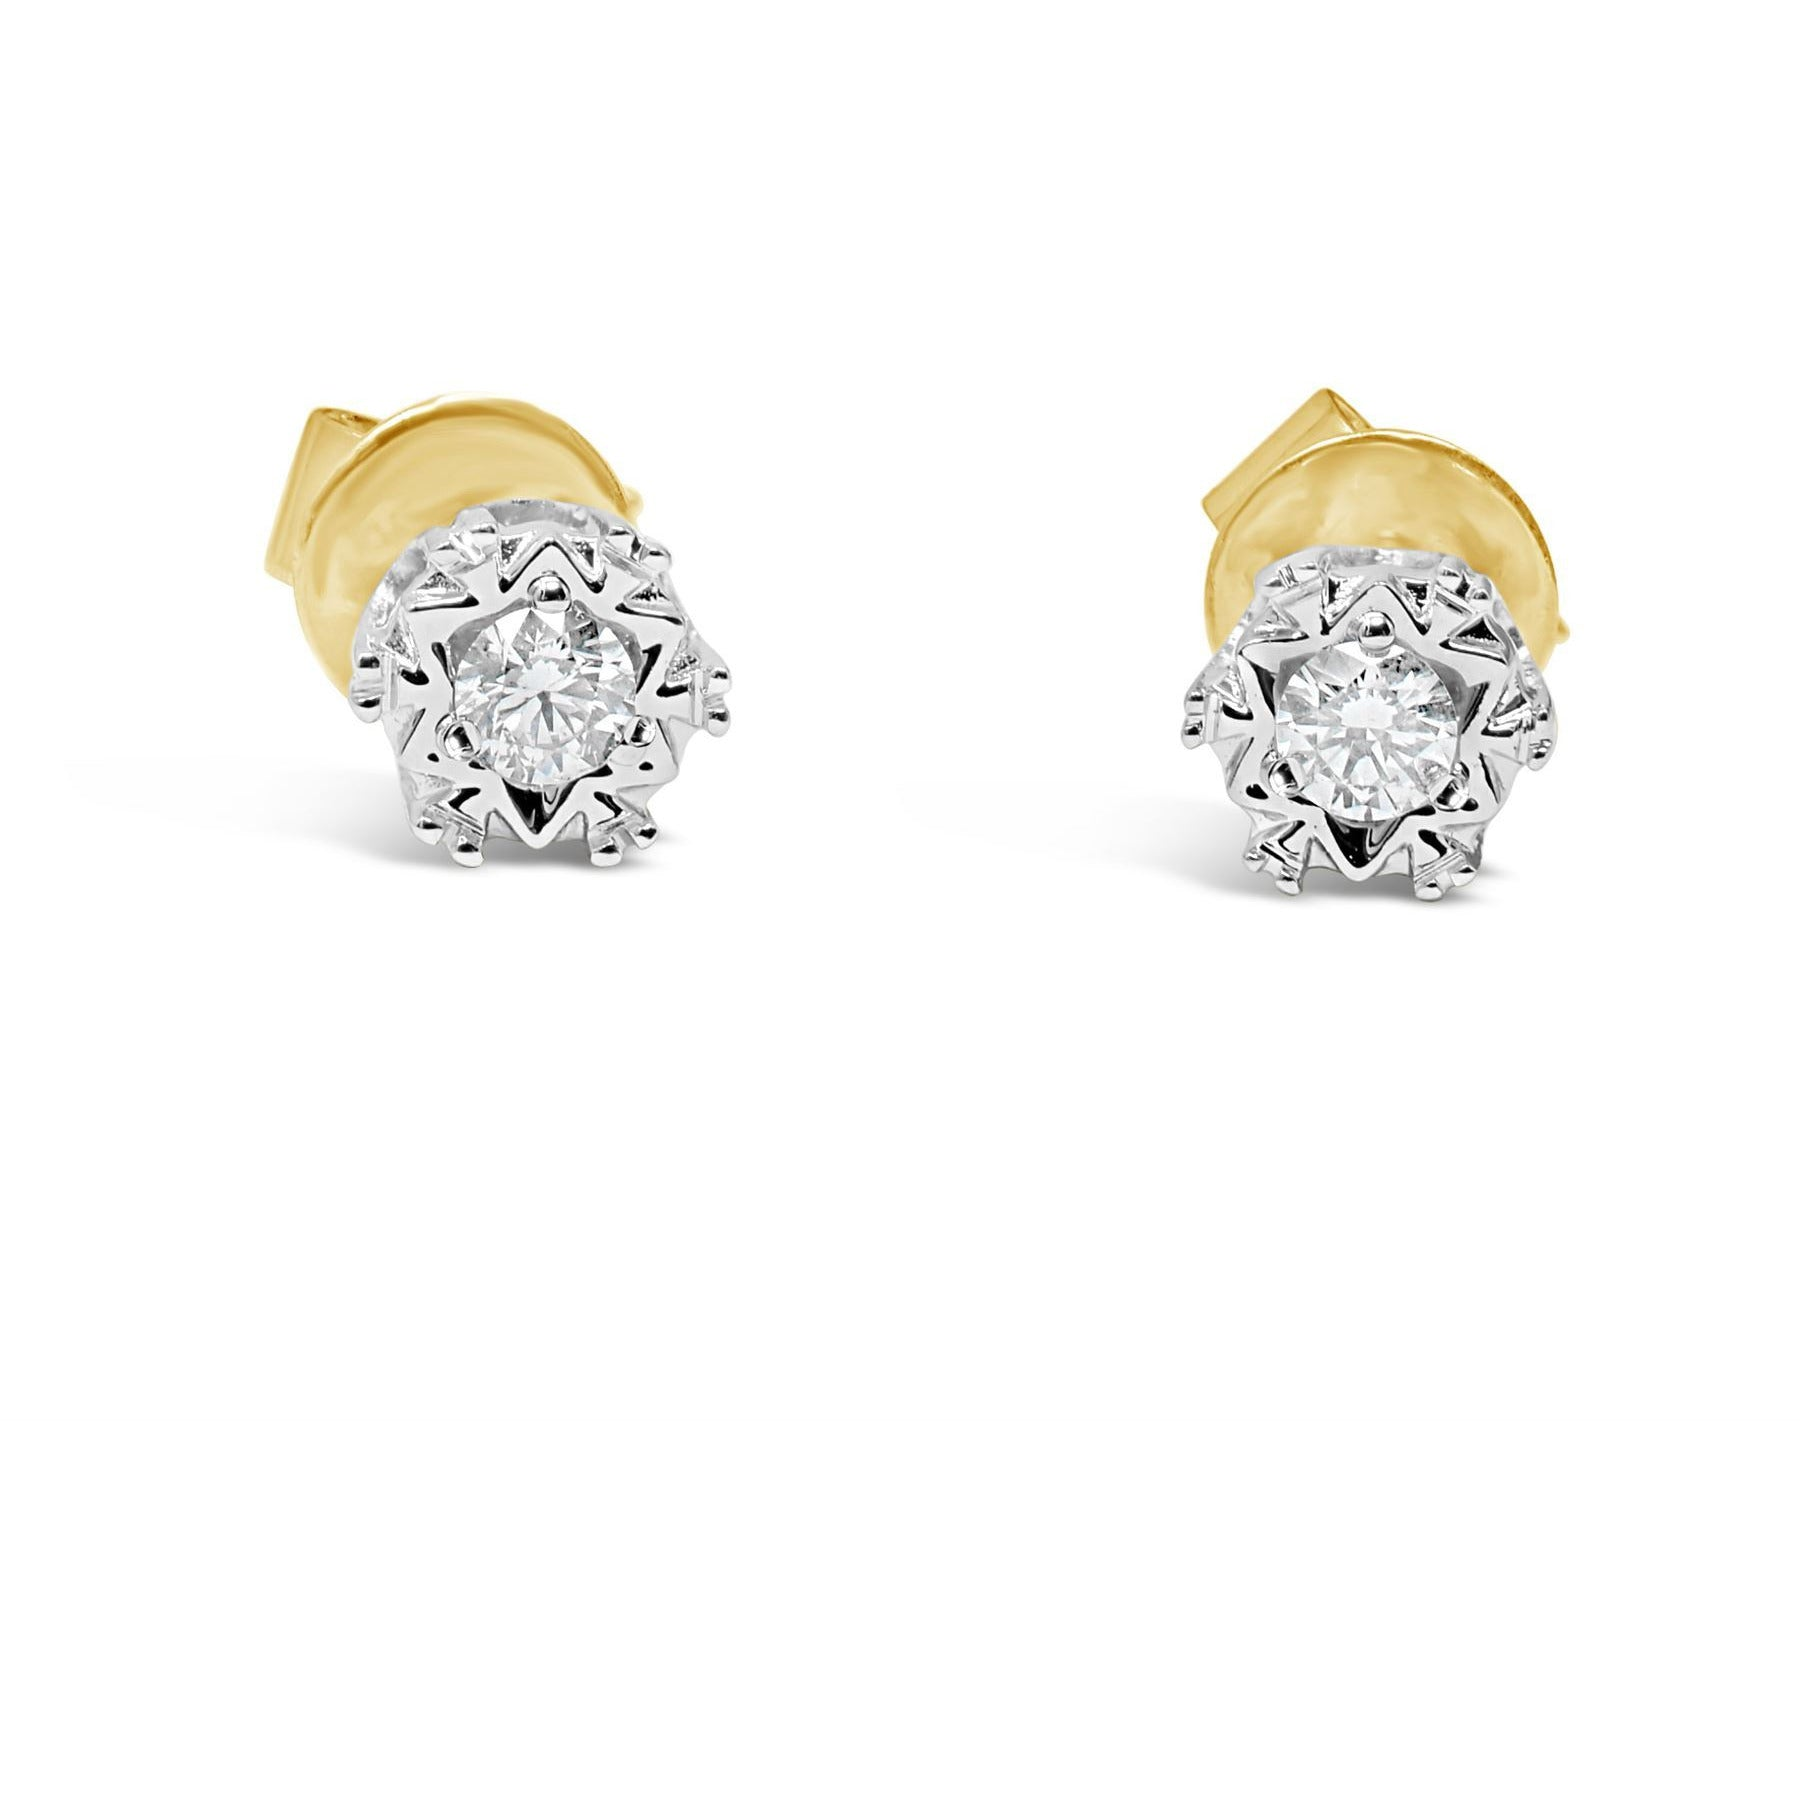 yellow gold diamond earrings with detailed setting and bright diamonds - G&S Diamonds